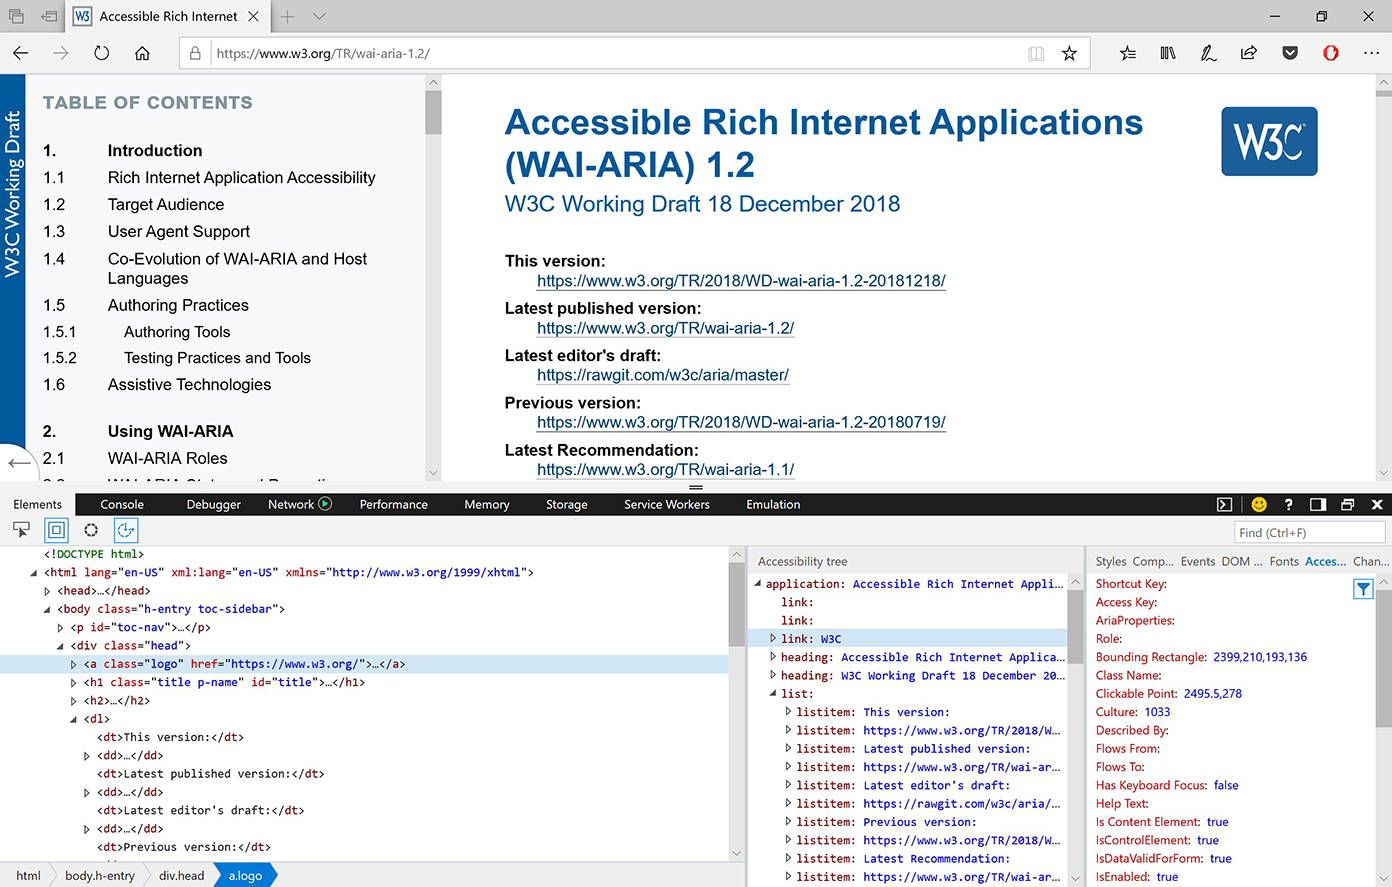 Screenshot showing the accessibility tools in Microsoft Edge